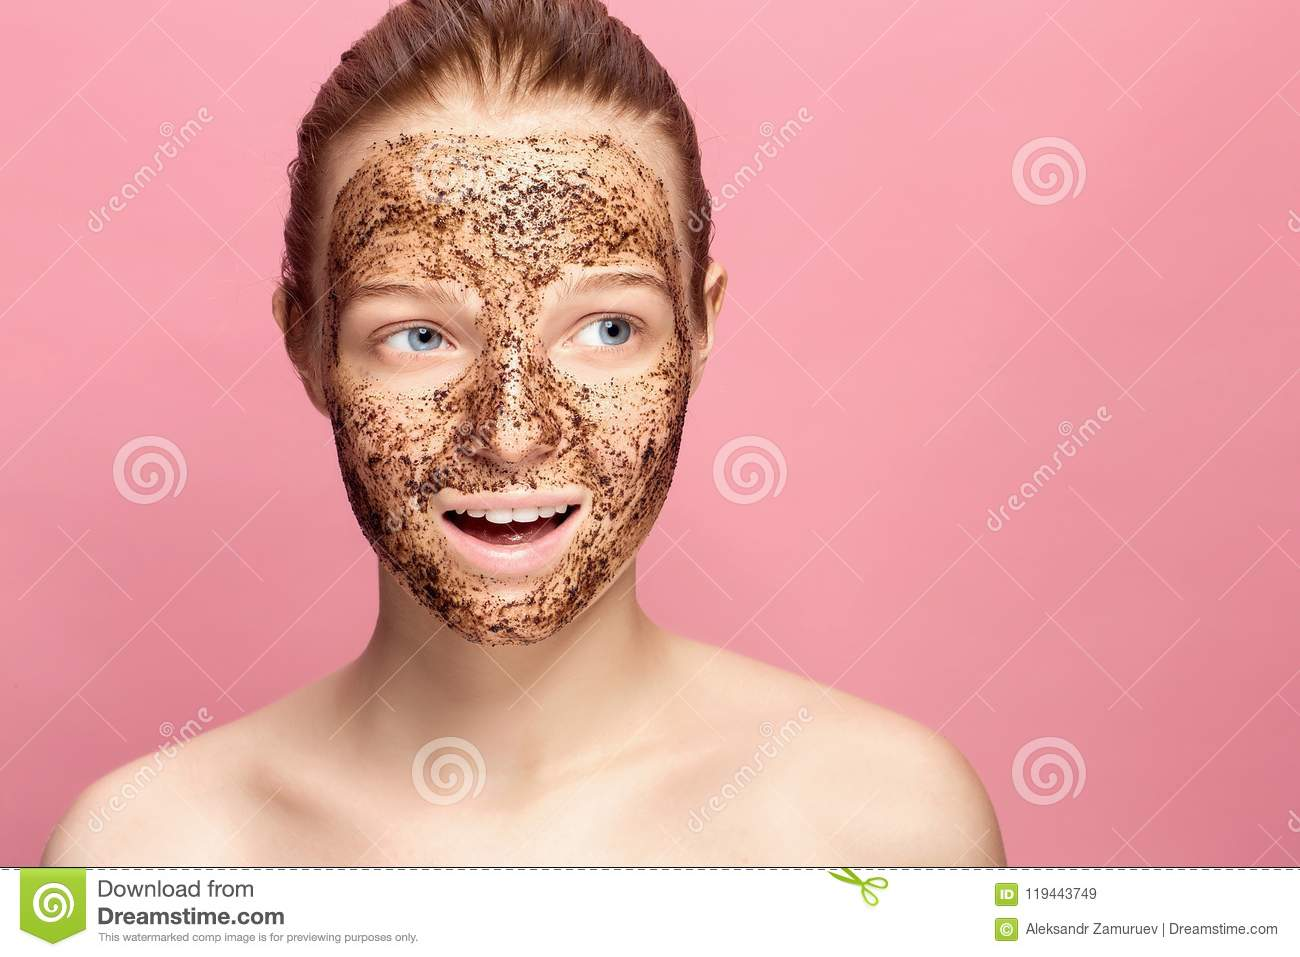 Face Skin Scrub. Portrait Of Smiling Female Model Applying Natural Coffee Mask, Face Scrub On Facial Skin. Closeup